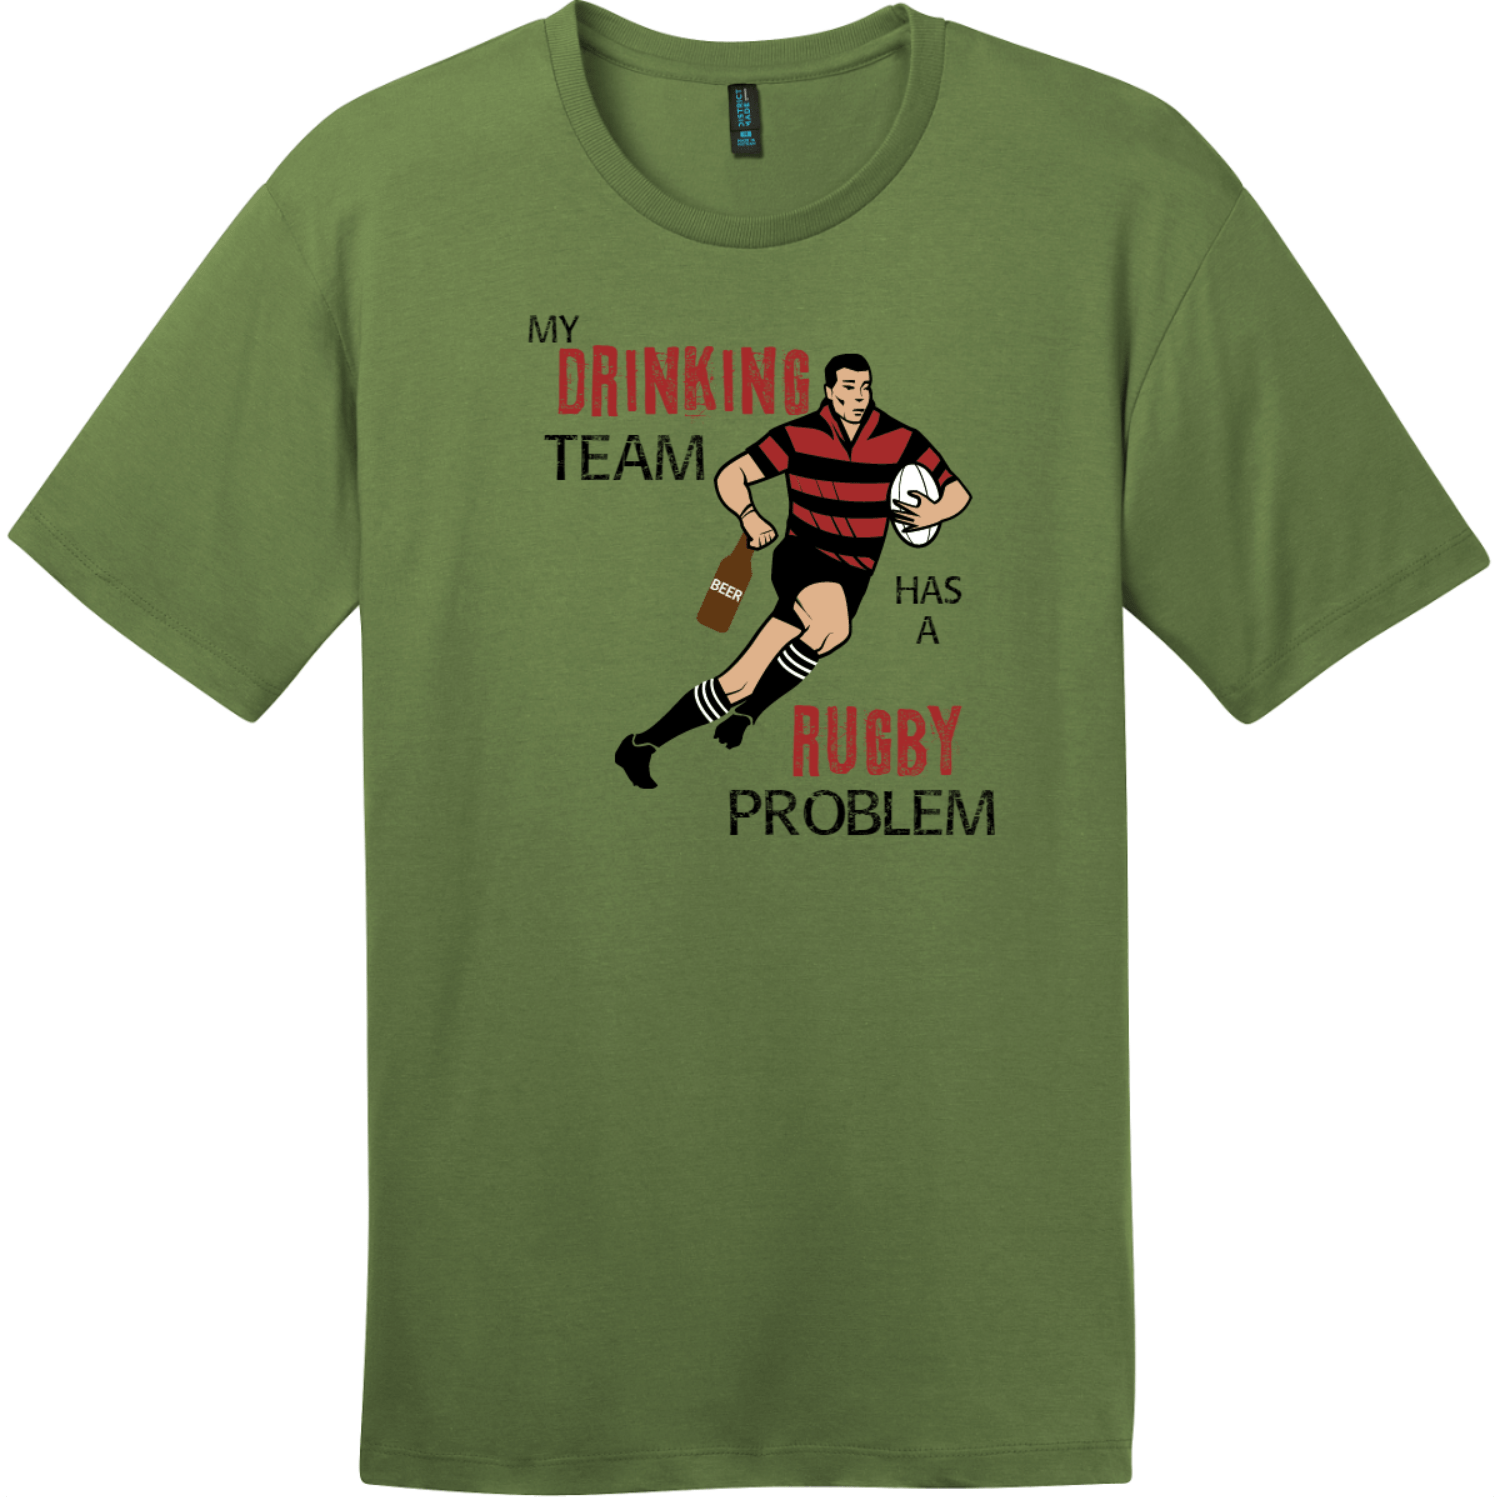 My Drinking Team Has A Rugby Problem T-Shirt Fresh Fatigue District Perfect Weight Tee DT104